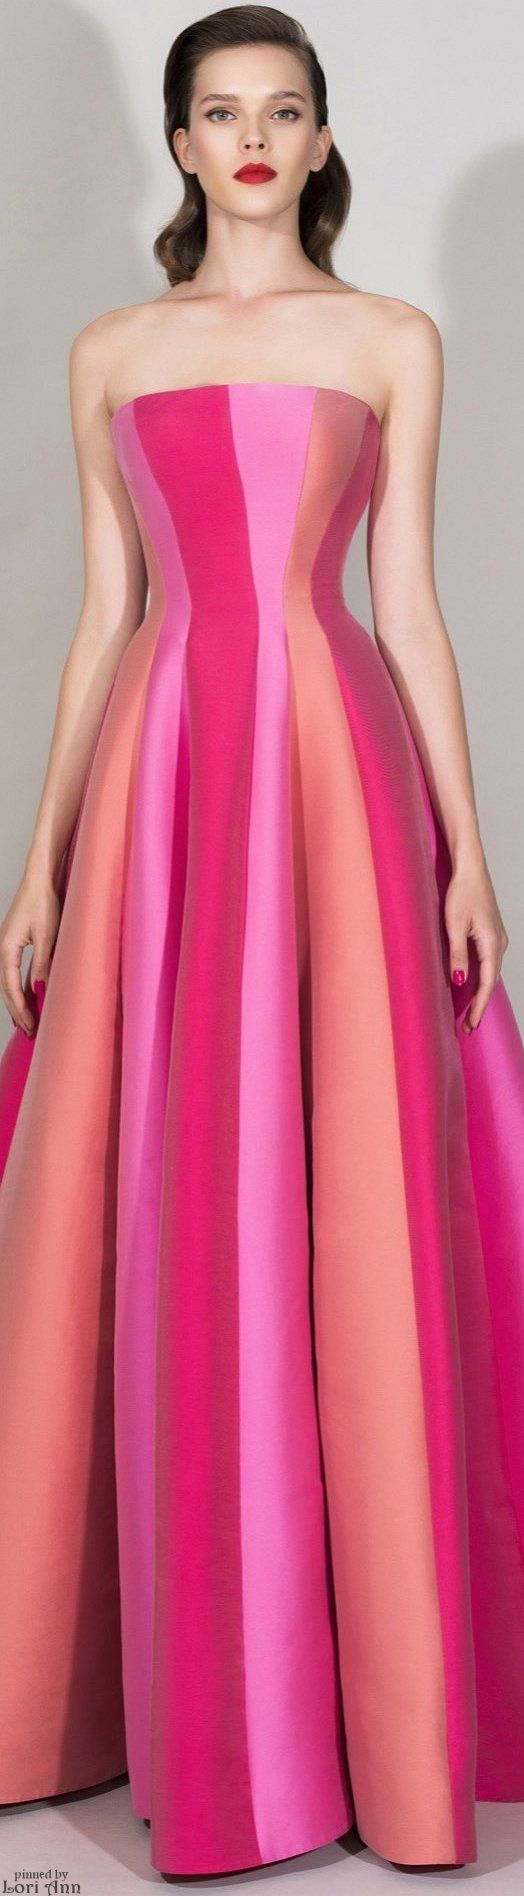 Zuhair Murad Resort 2016 - not sure who would wear this at a resort - looks like a glamorous circus tent - colorblock gown